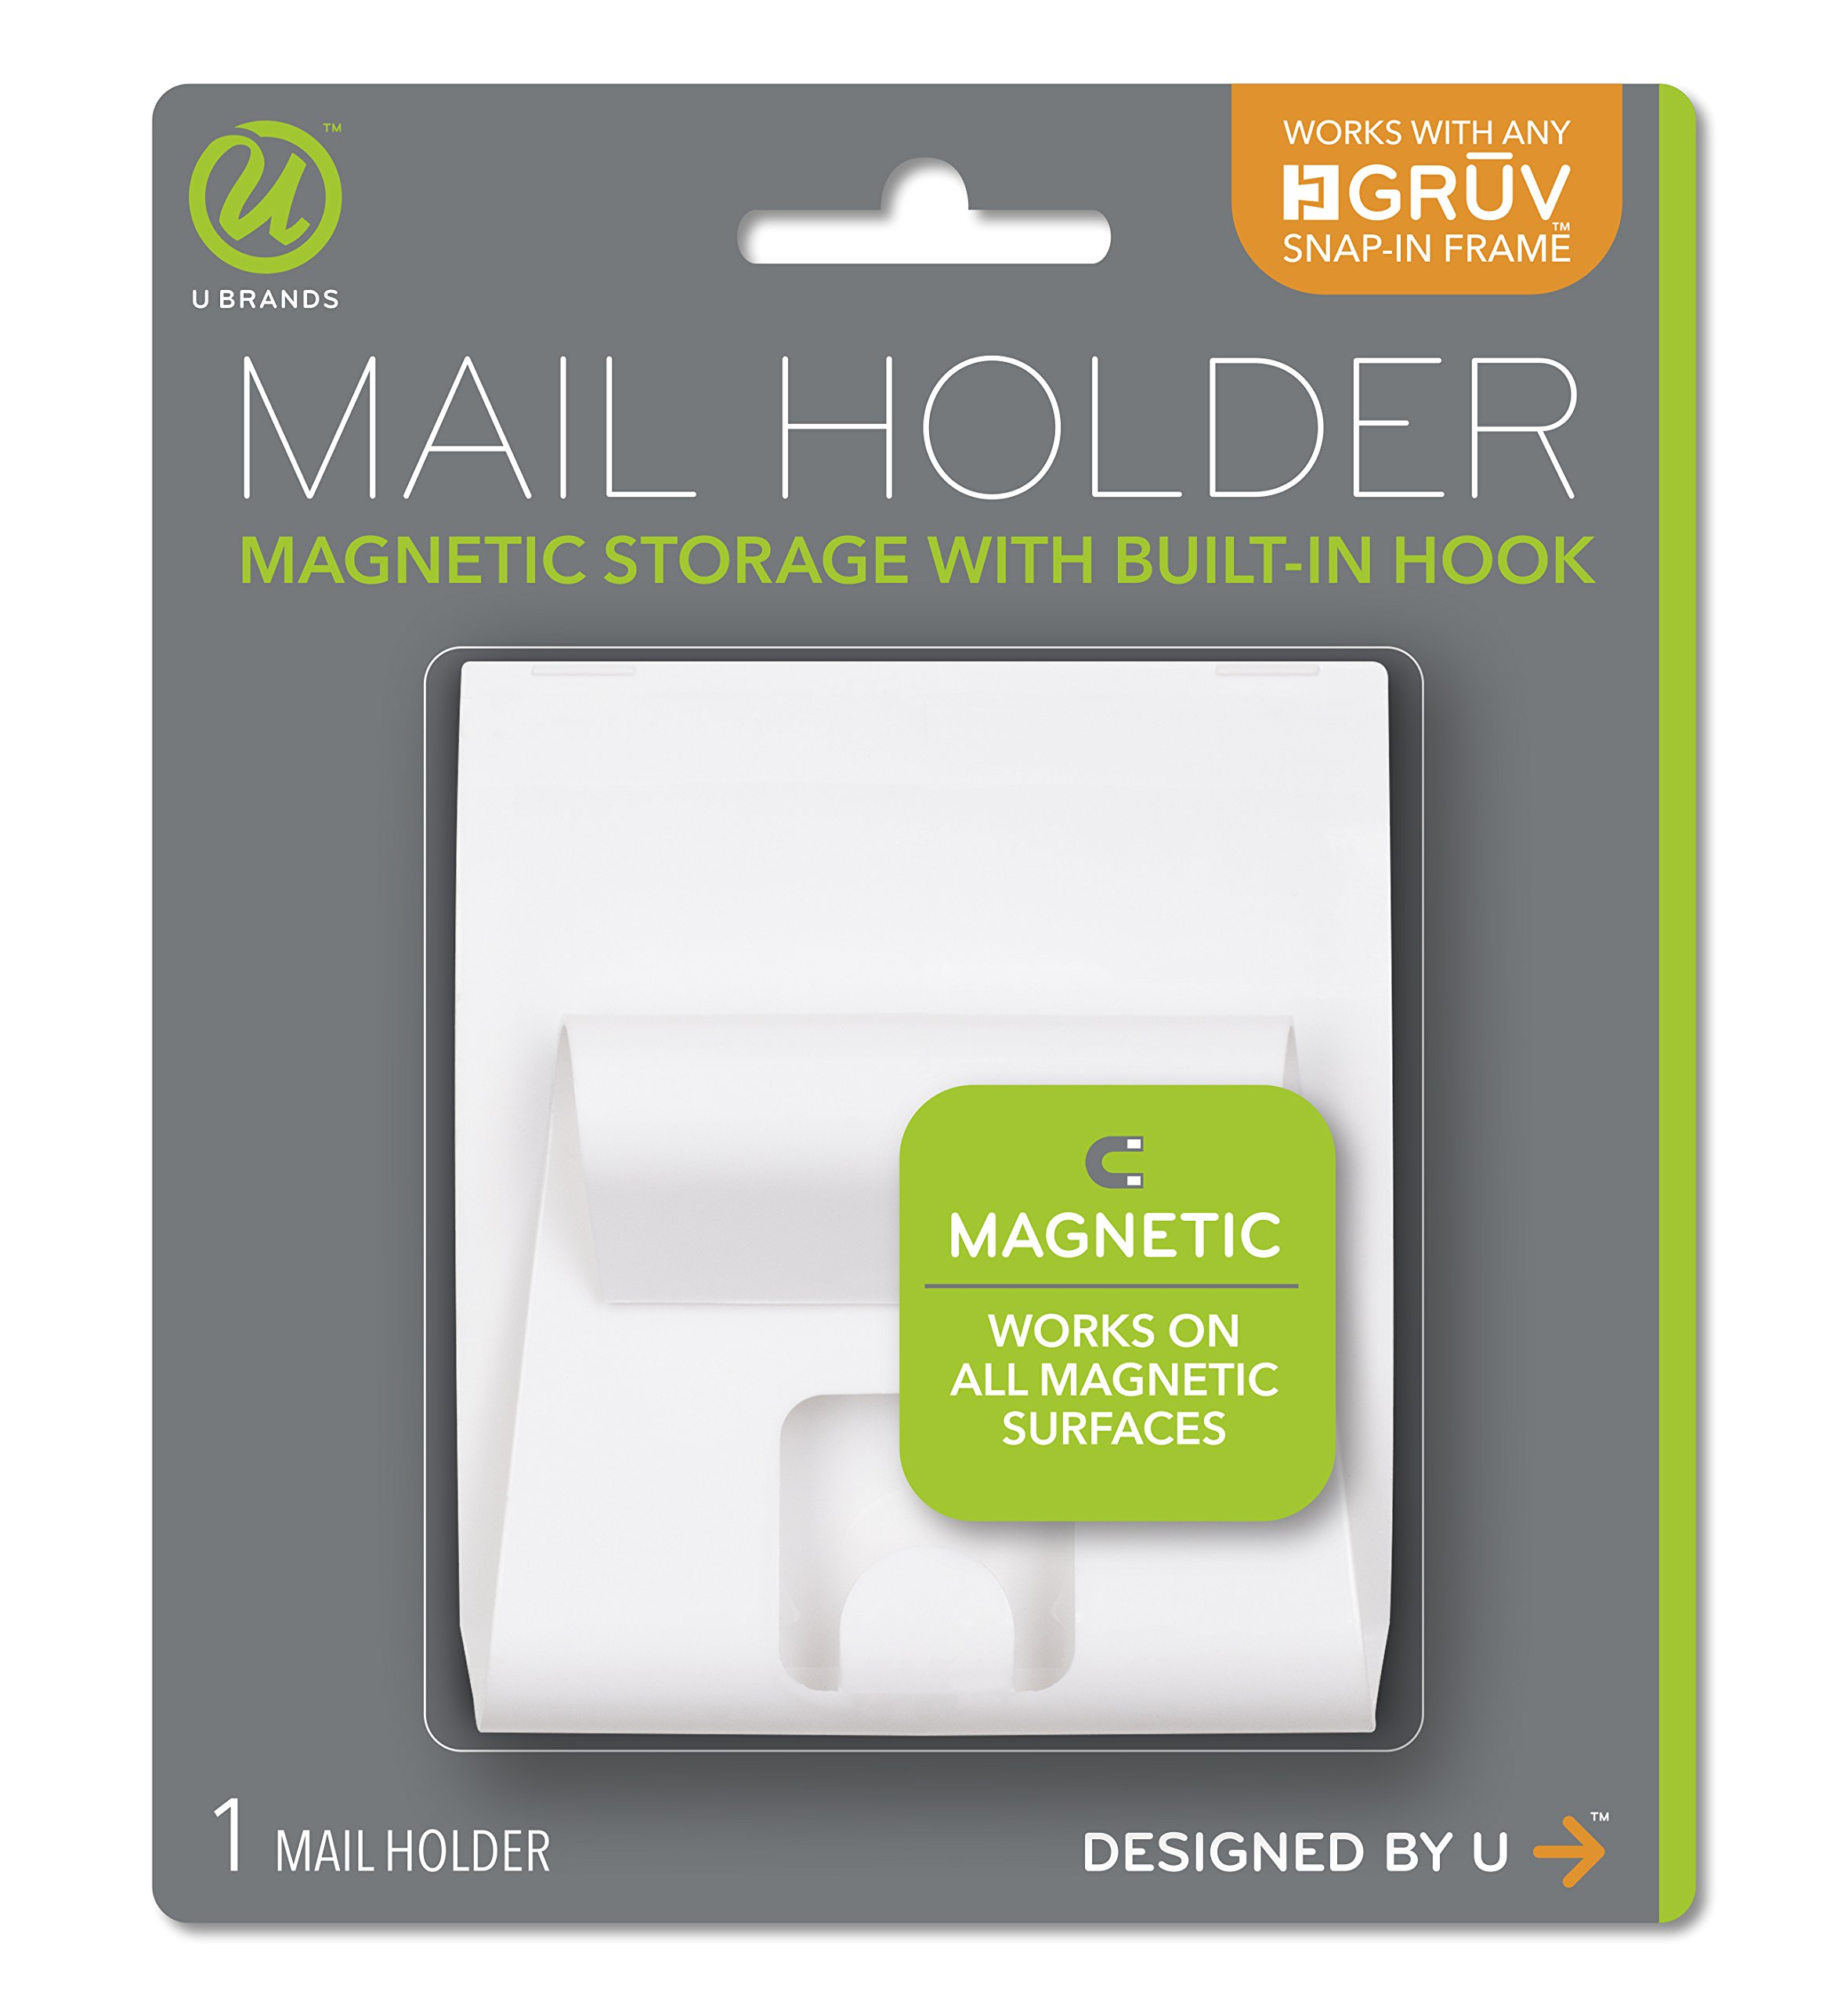 U Brands Gruv Magnetic Mail Holder with Key Hook, White, 3.5 x 3.25 Inches by U Brands (Image #1)